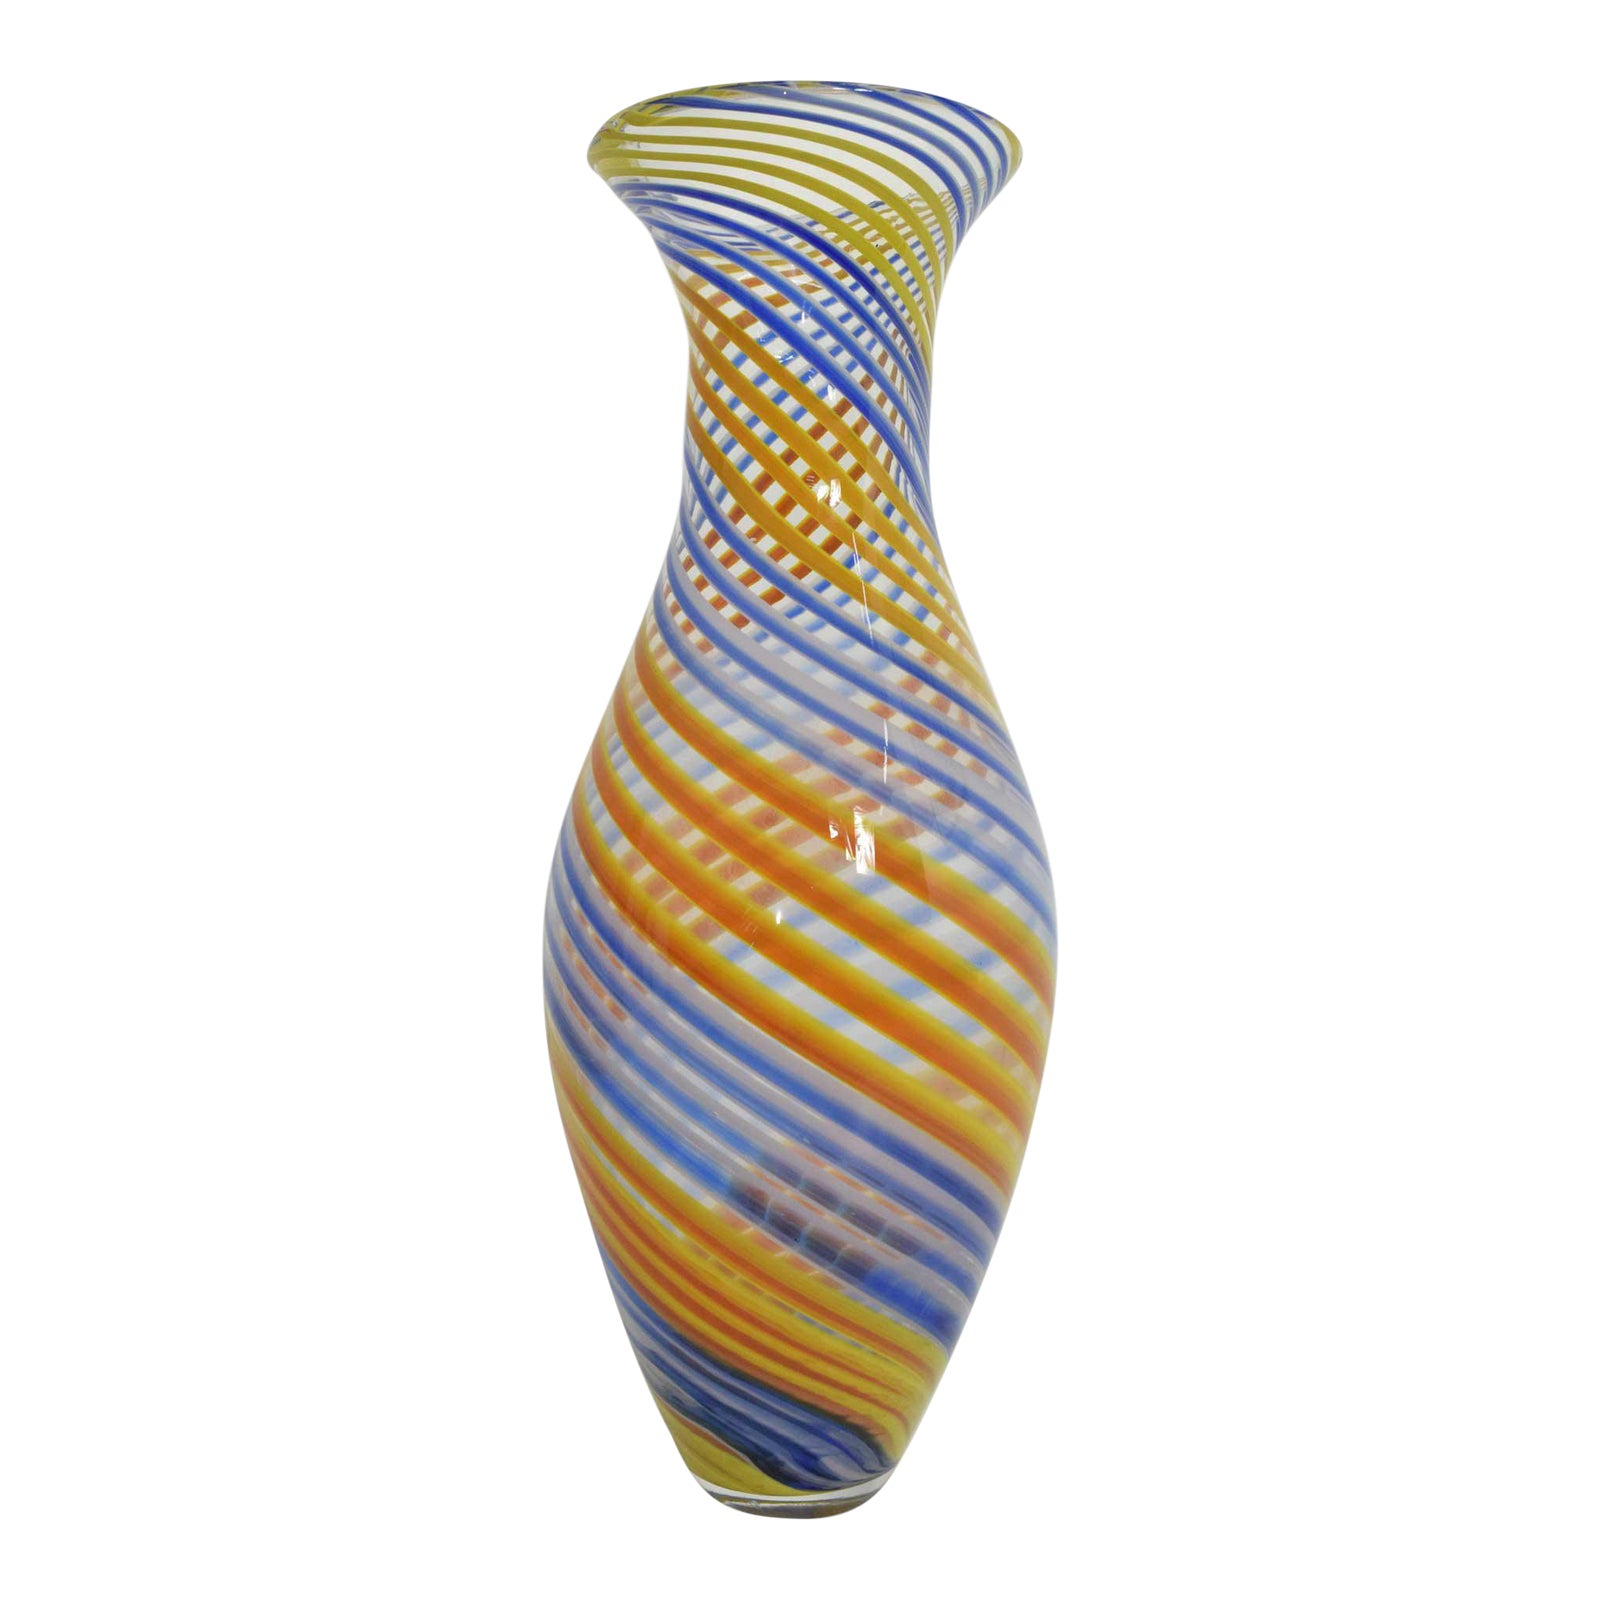 tall-murano-vase-7938?aspect=fit&height=1600&width=1600.jpg